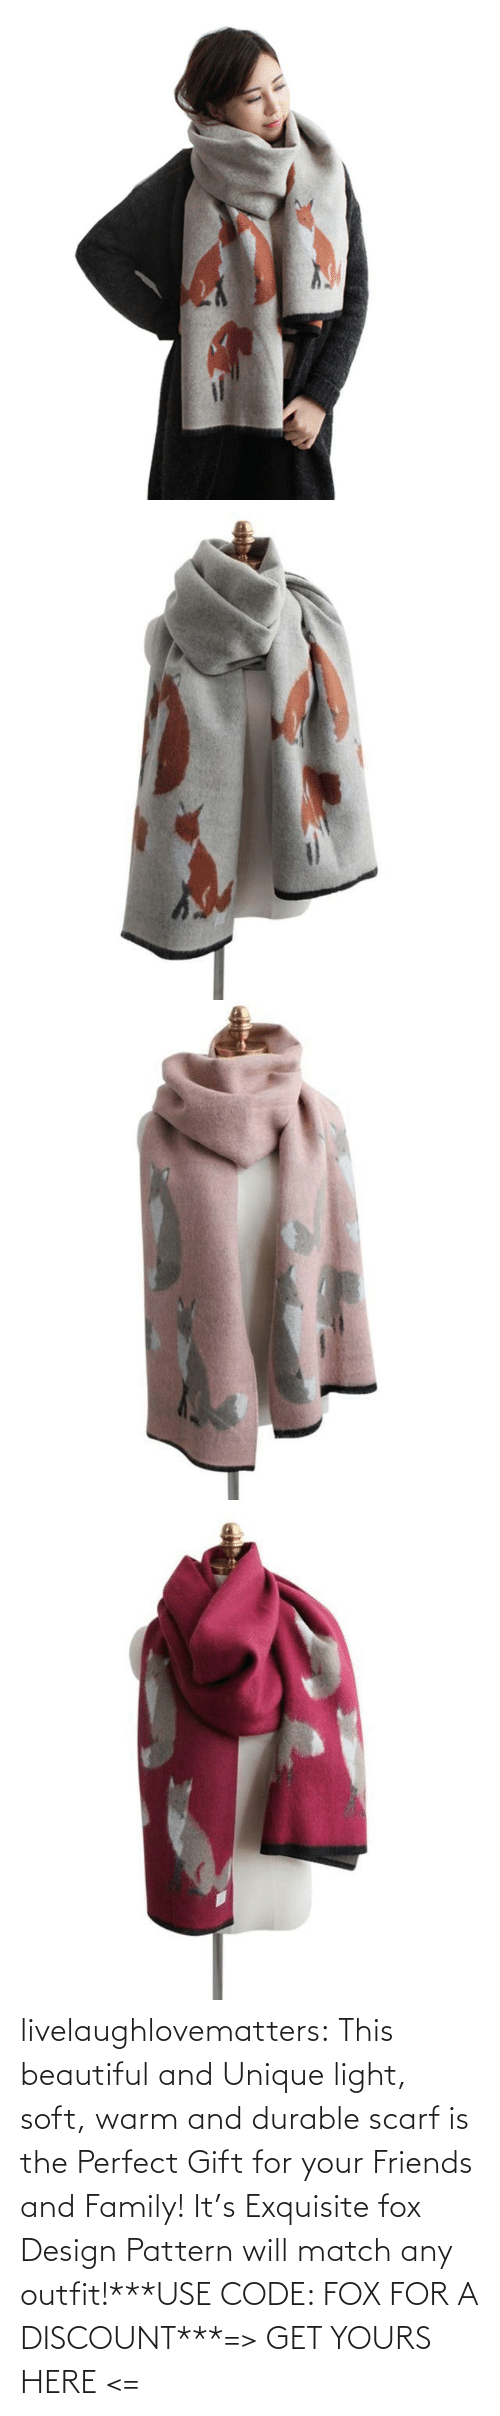 yours: livelaughlovematters:  This beautiful and Unique light, soft, warm and durable scarf is the Perfect Gift for your Friends and Family! It's Exquisite fox Design Pattern will match any outfit!***USE CODE: FOX FOR A DISCOUNT***=> GET YOURS HERE <=